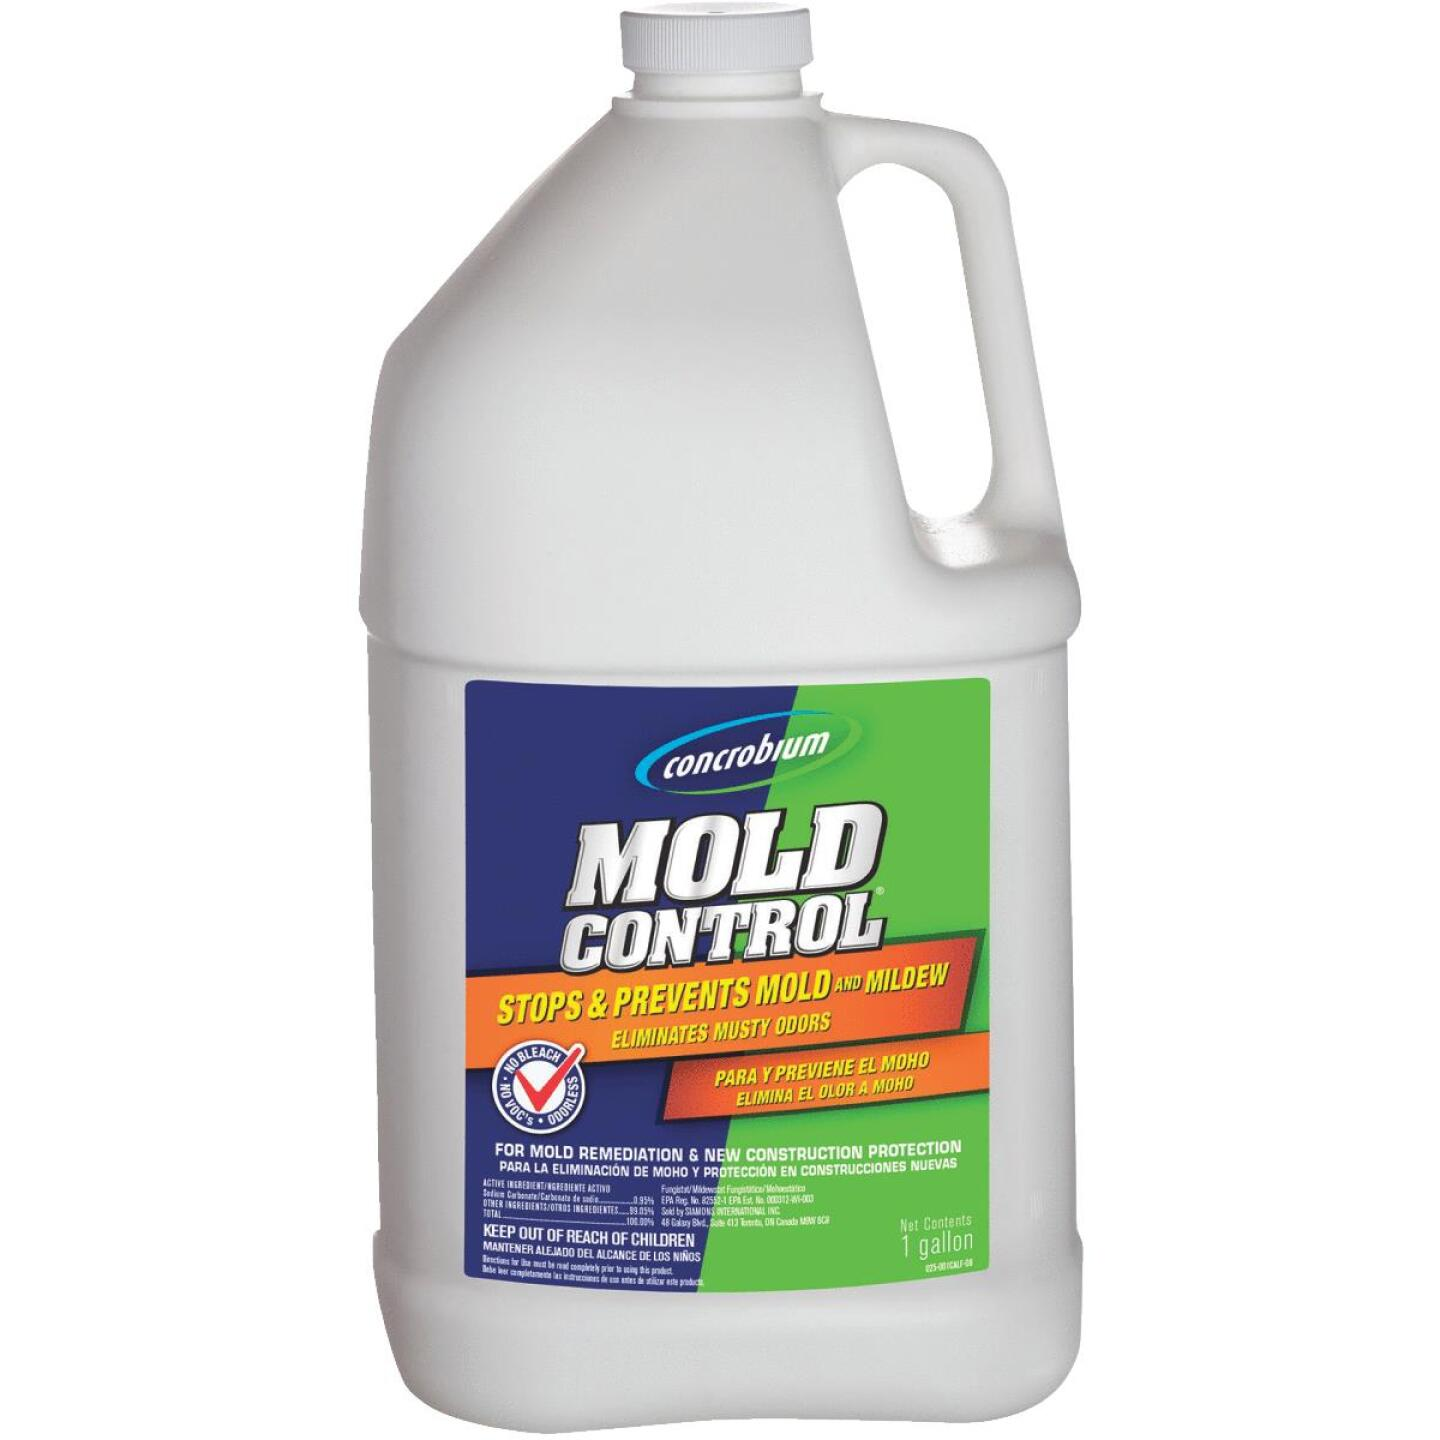 Concrobium Mold Control 1 Gal. Stops & Prevents Mold & Mildew Inhibitor - California Image 1